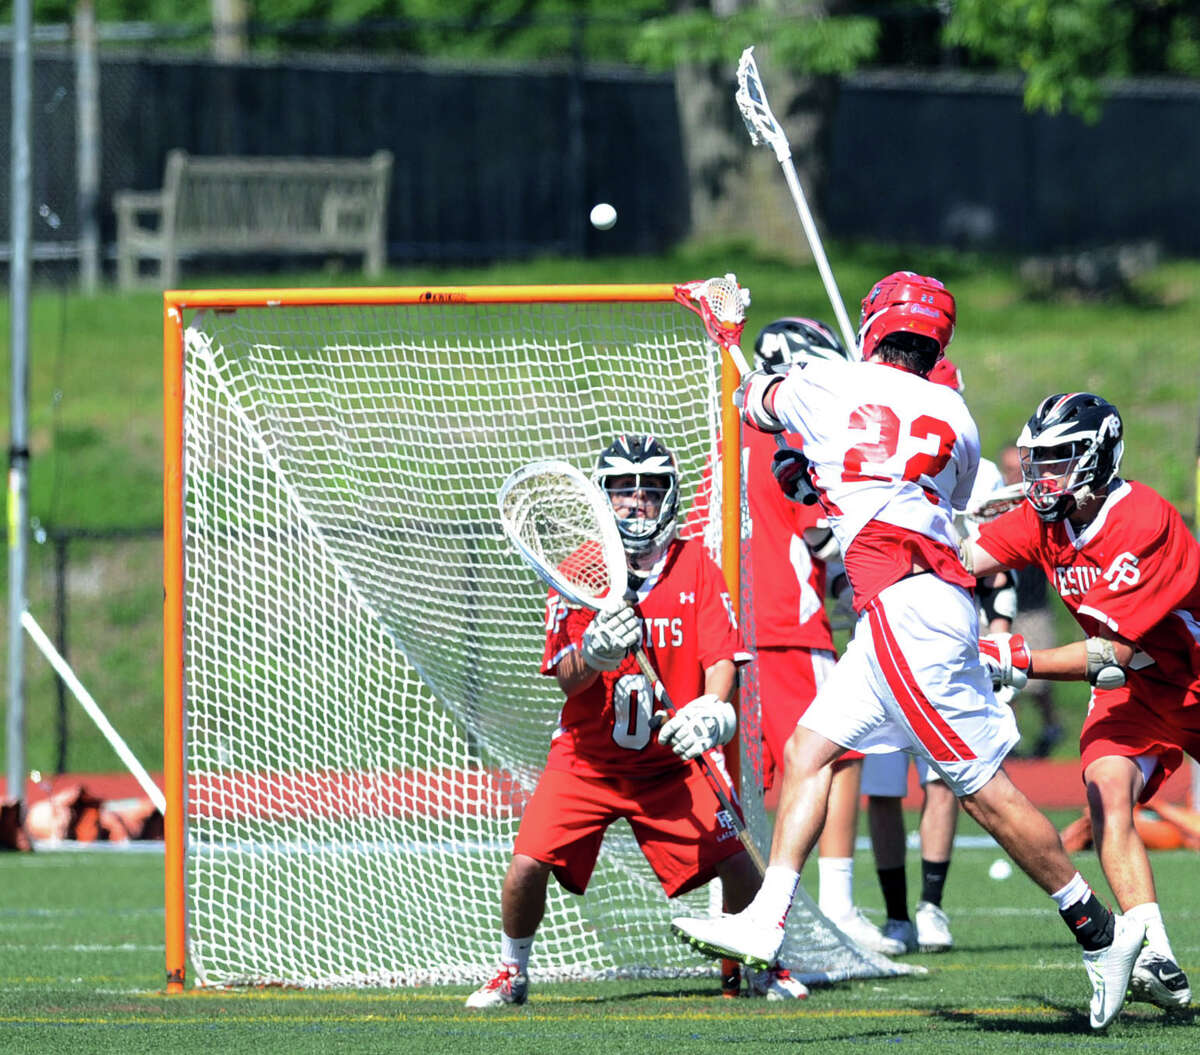 Ryan Flippin (#22) of Greenwich shoots as Farield Prep goalie John O'Connor (#0), left, defends during the Class L boys high school lacrosse quarterfinal match between Fairfield Prep and Greenwich High School at Greenwich, Saturday, June 7, 2014. Flippin did not score on the shot that O'Connor blocked but Greenwich went on to win the match, 9-8, advancing to the semi-final.